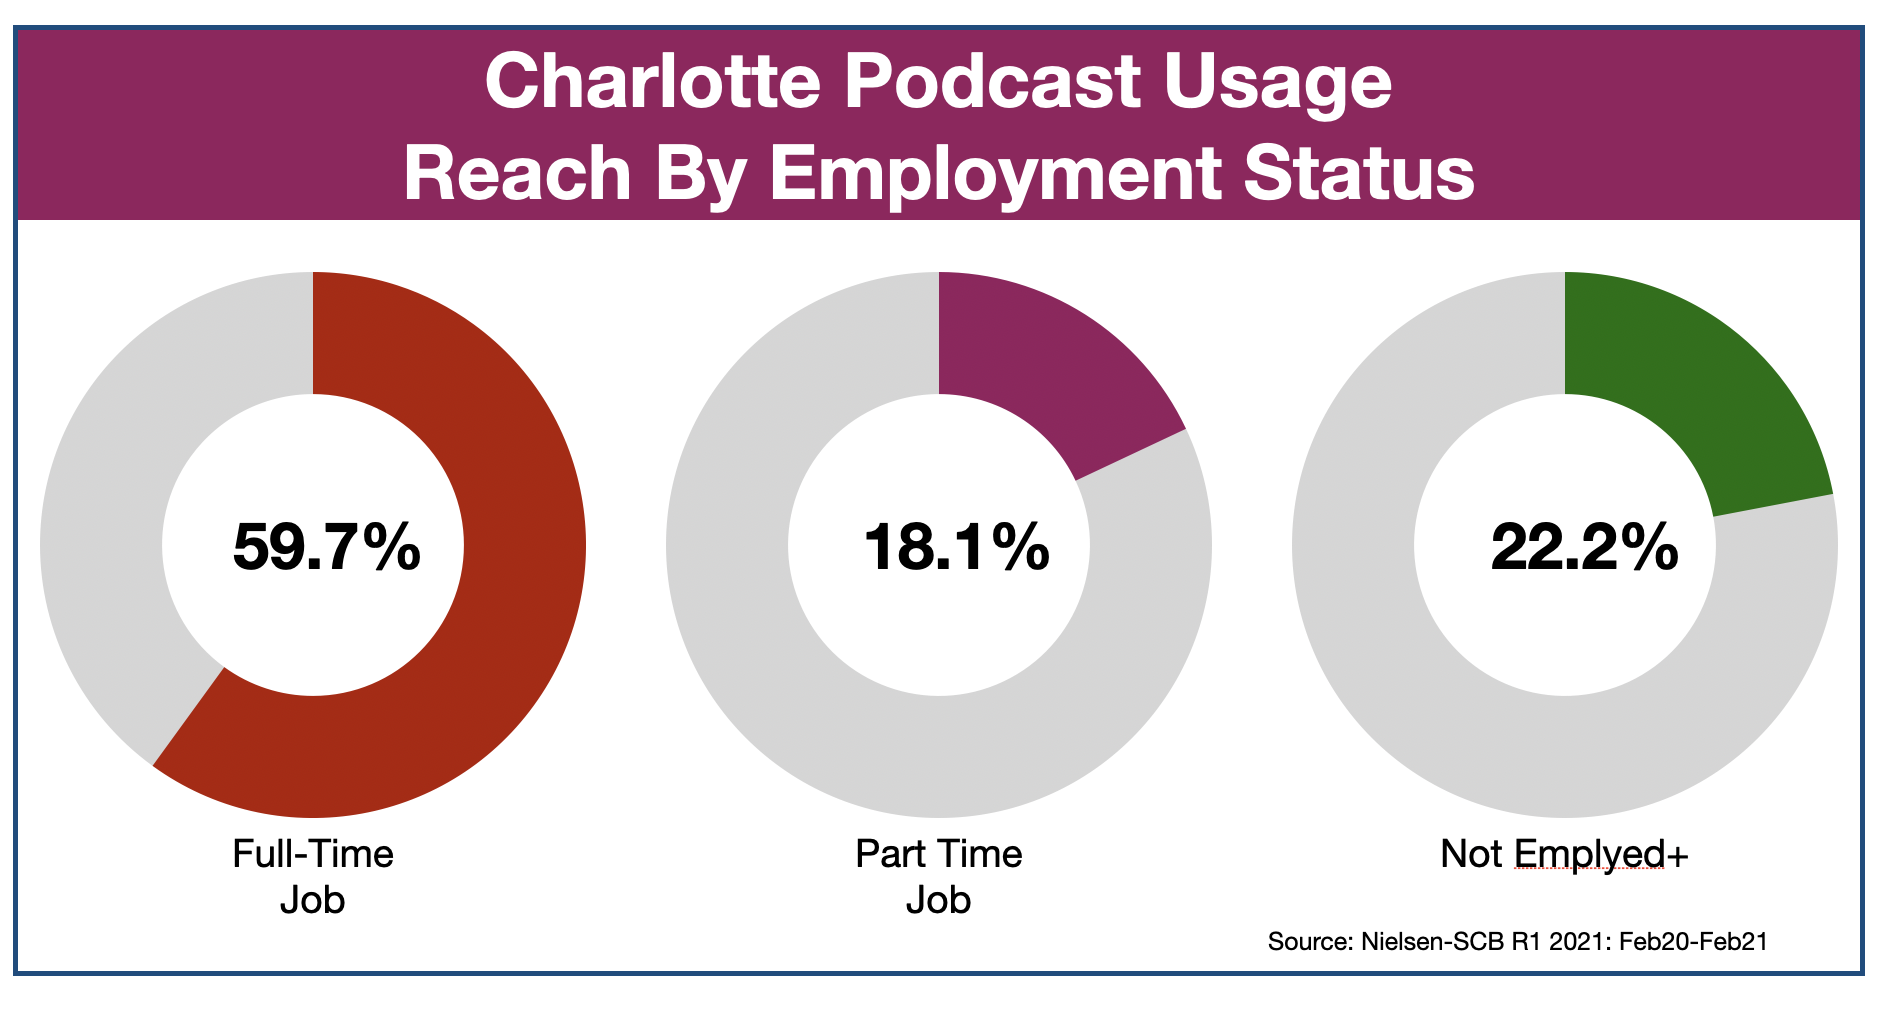 Podcast Advertising In Charlotte Employment